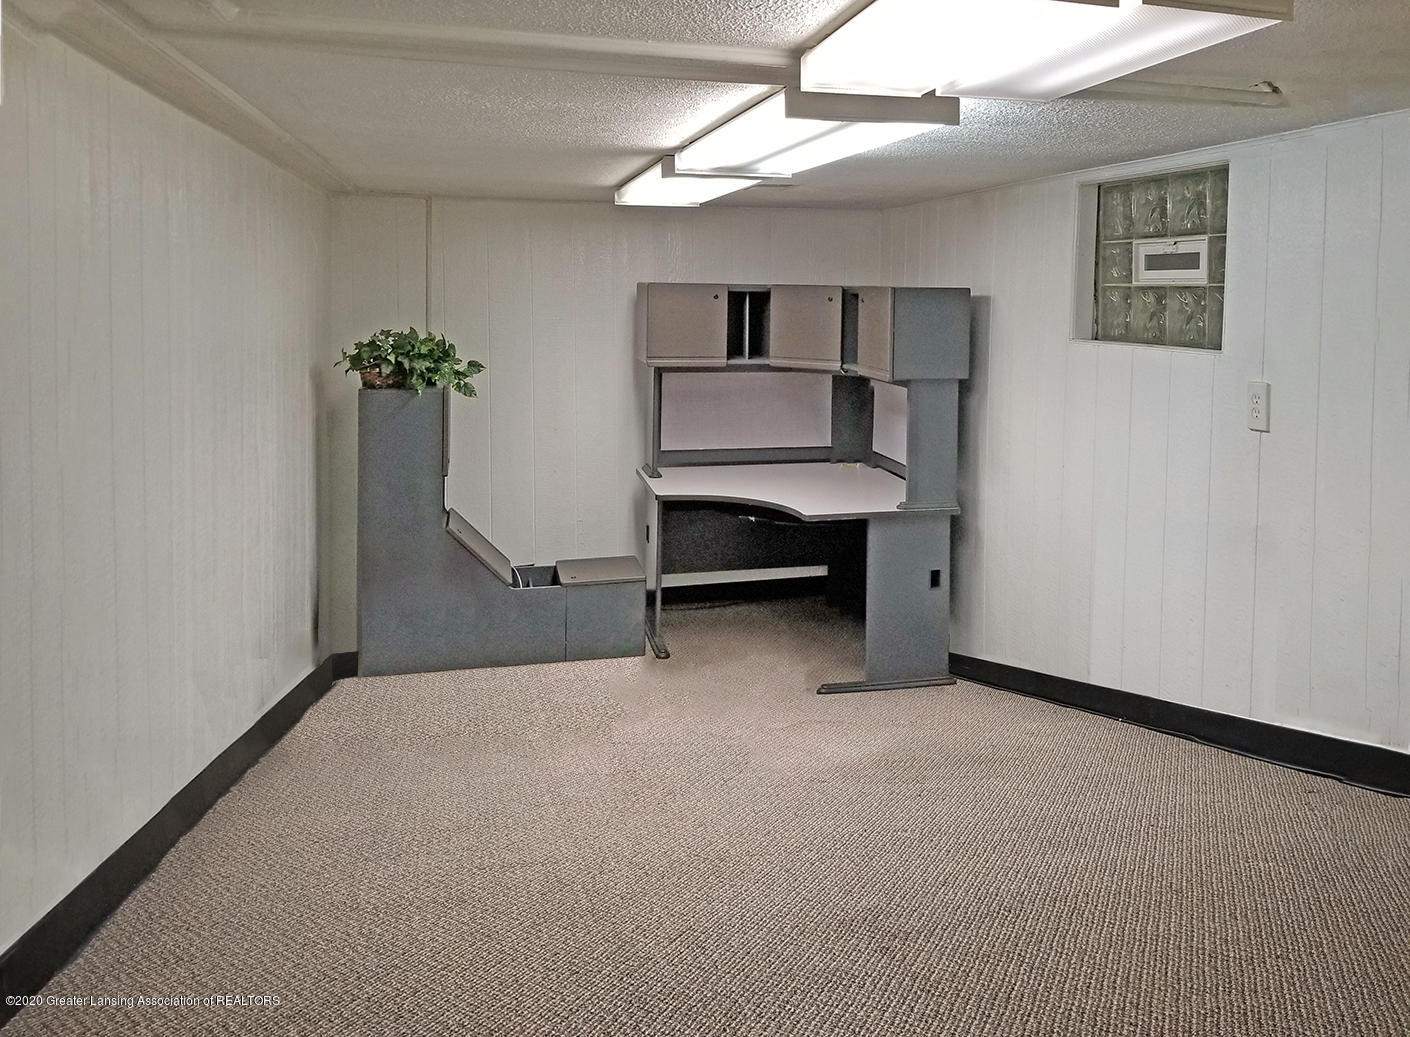 2208 Clifton Ave - Basement Office Area - Room for 3 Cubicl - 18